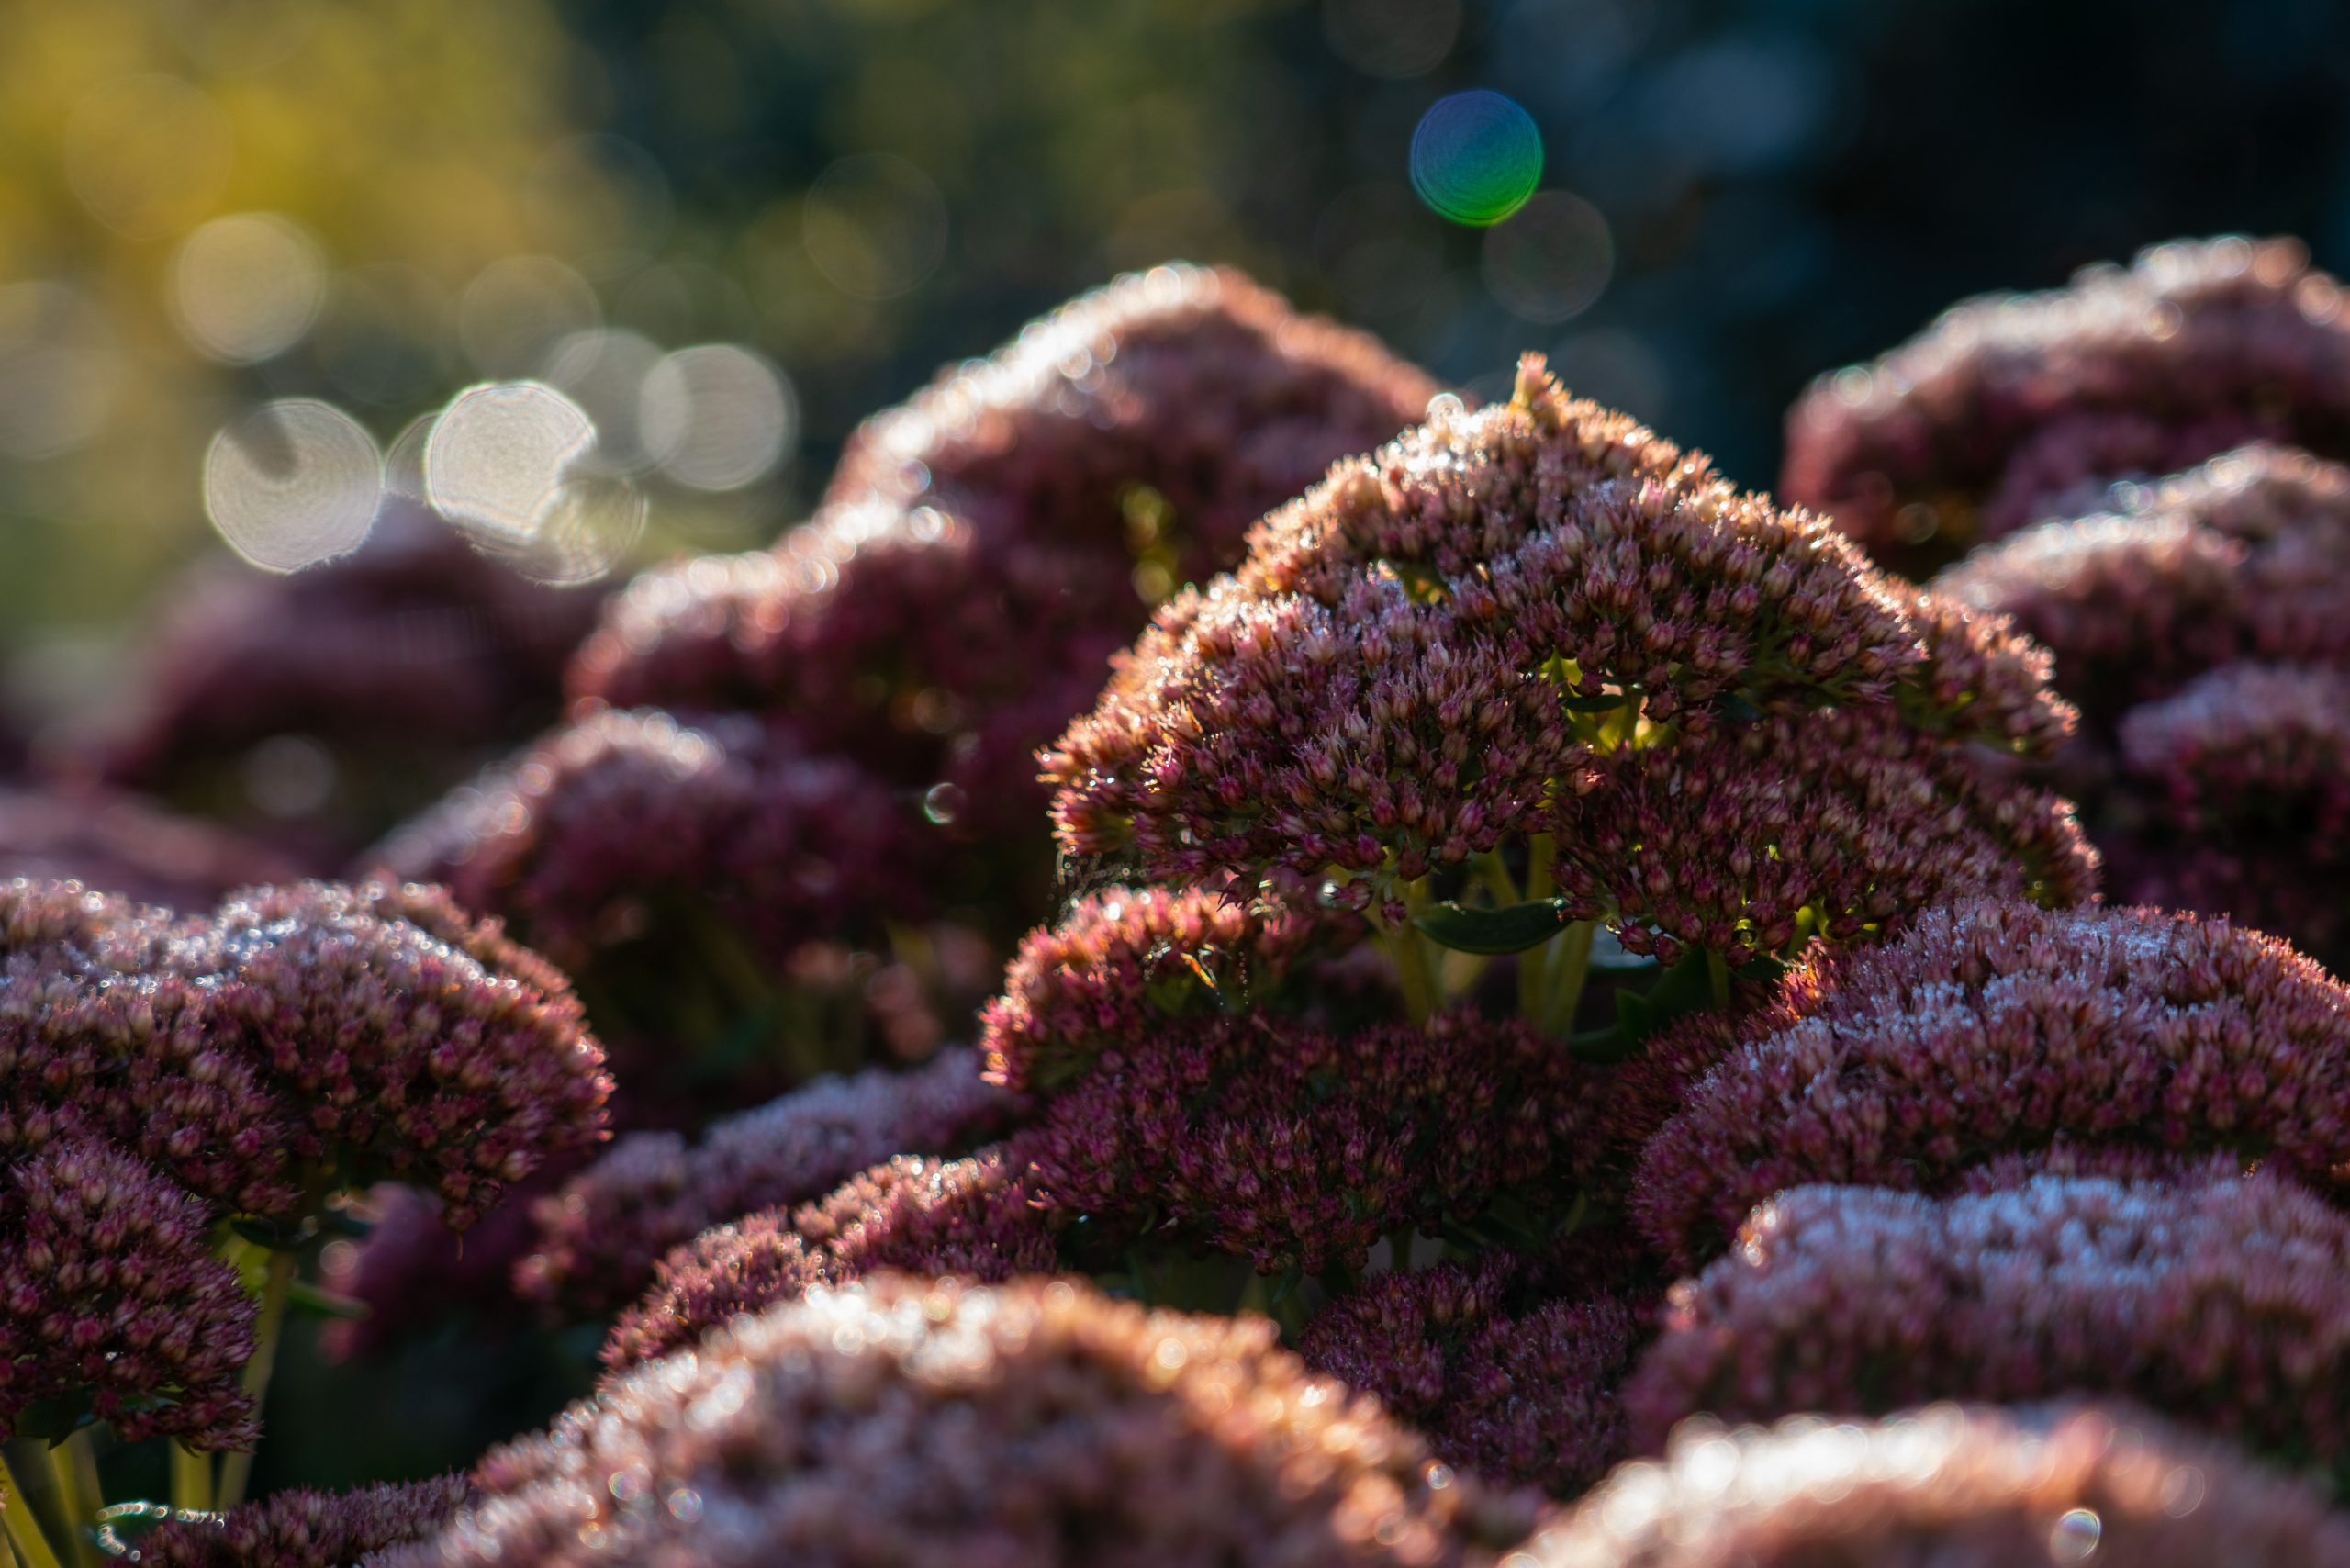 Frost covers purple-pink flowers early on a fall morning at Winton Woods.